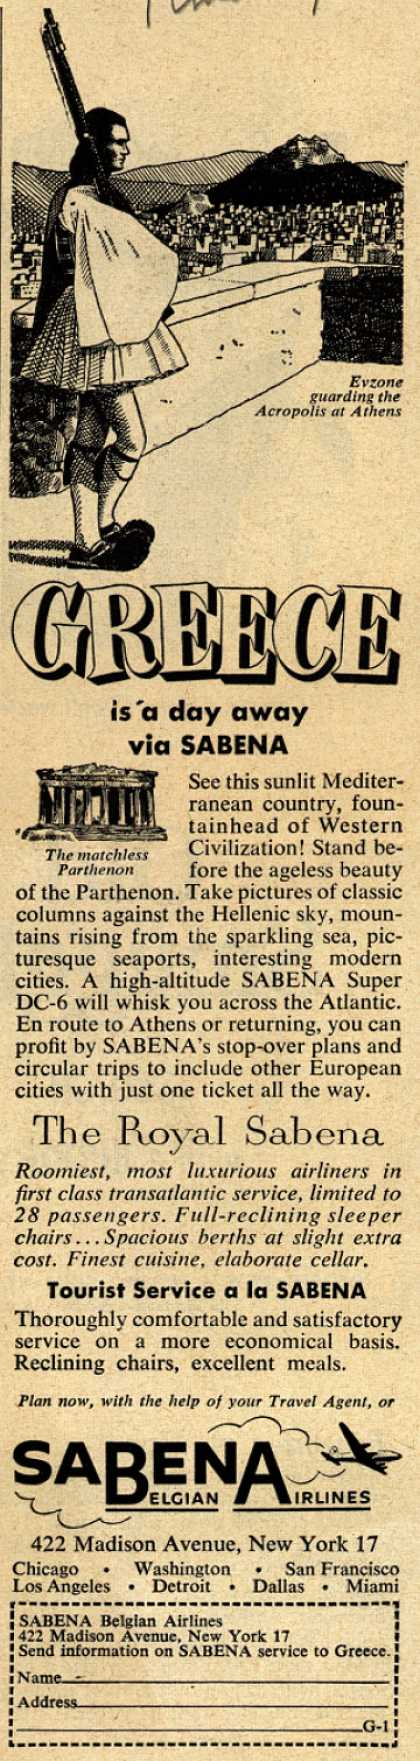 Sabena Belgian Airline's Greece – Greece is a day away (1954)